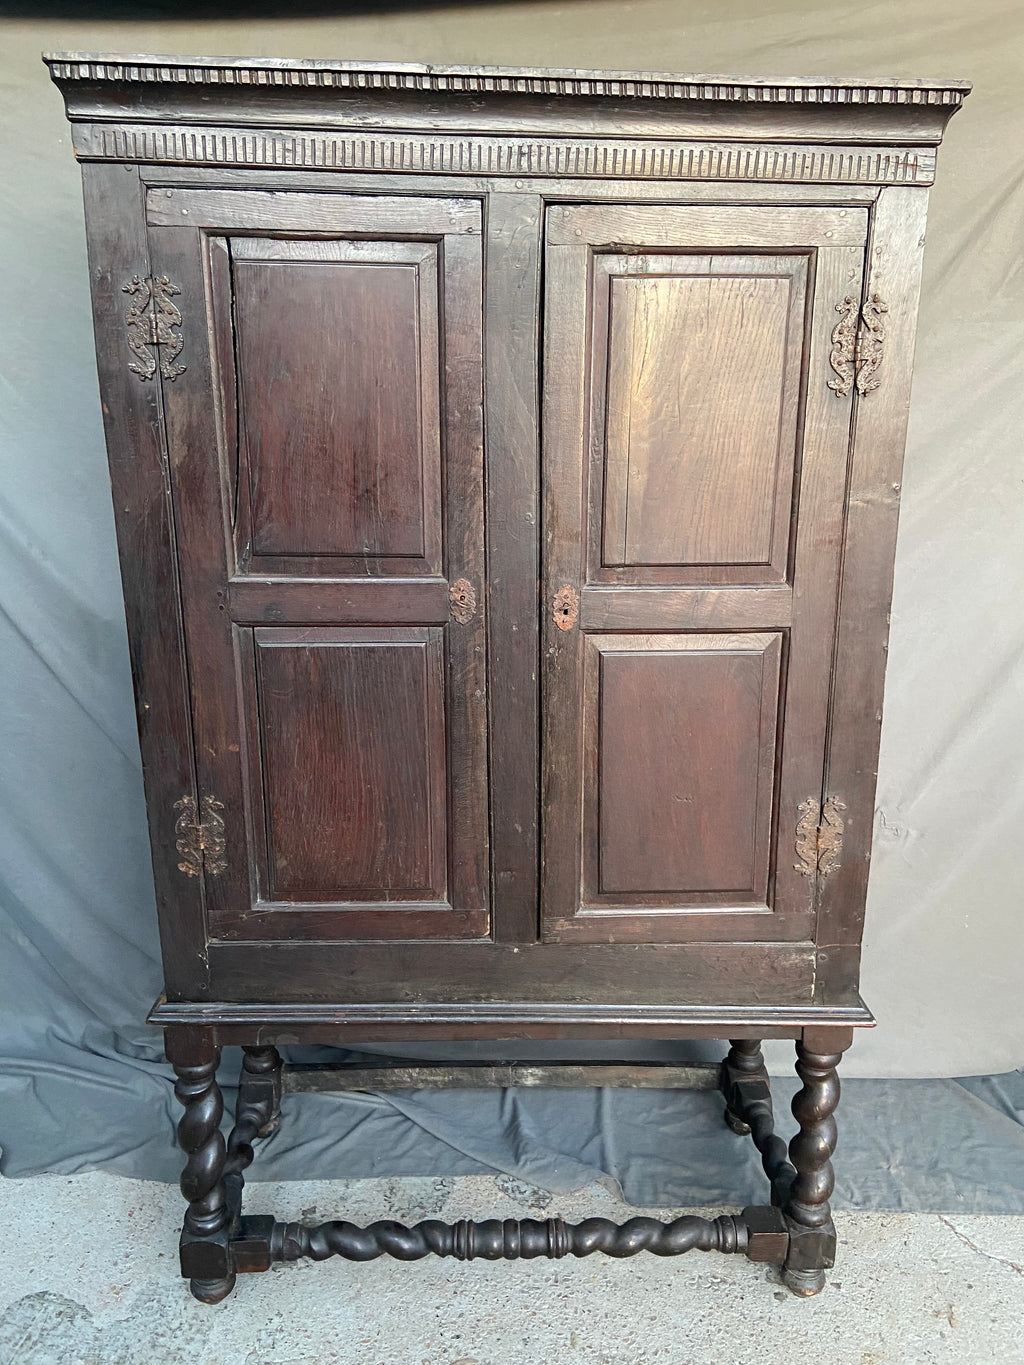 EARLY 19TH CENTURY FRENCH BARLEY TWIST CABINET